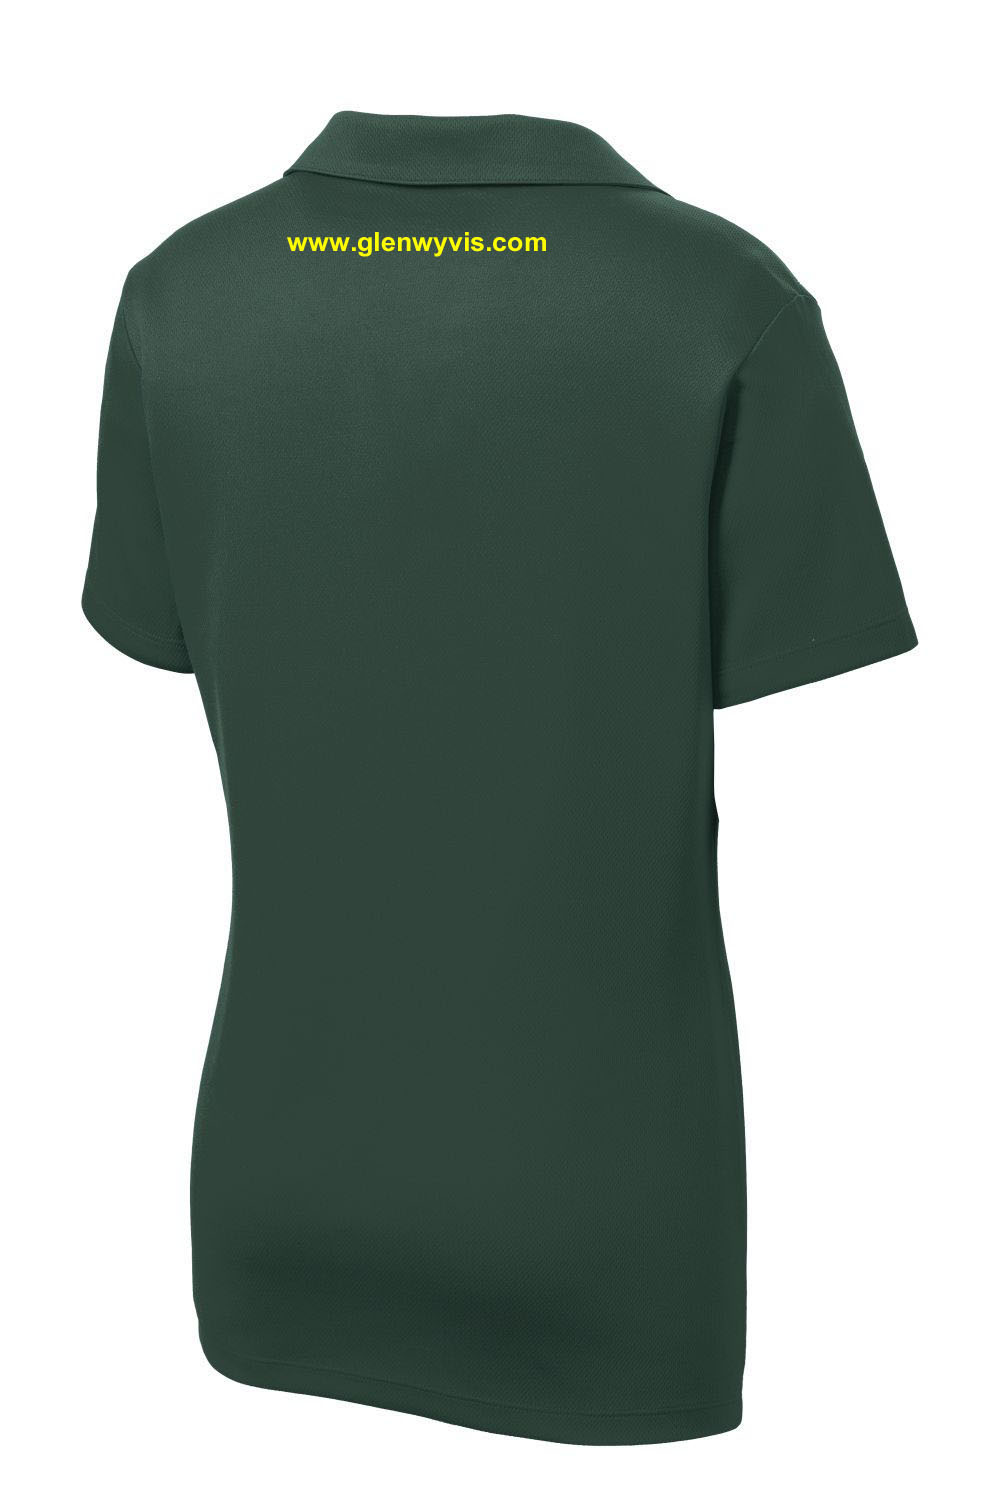 LADIES FIT POLO - FOREST GREEN